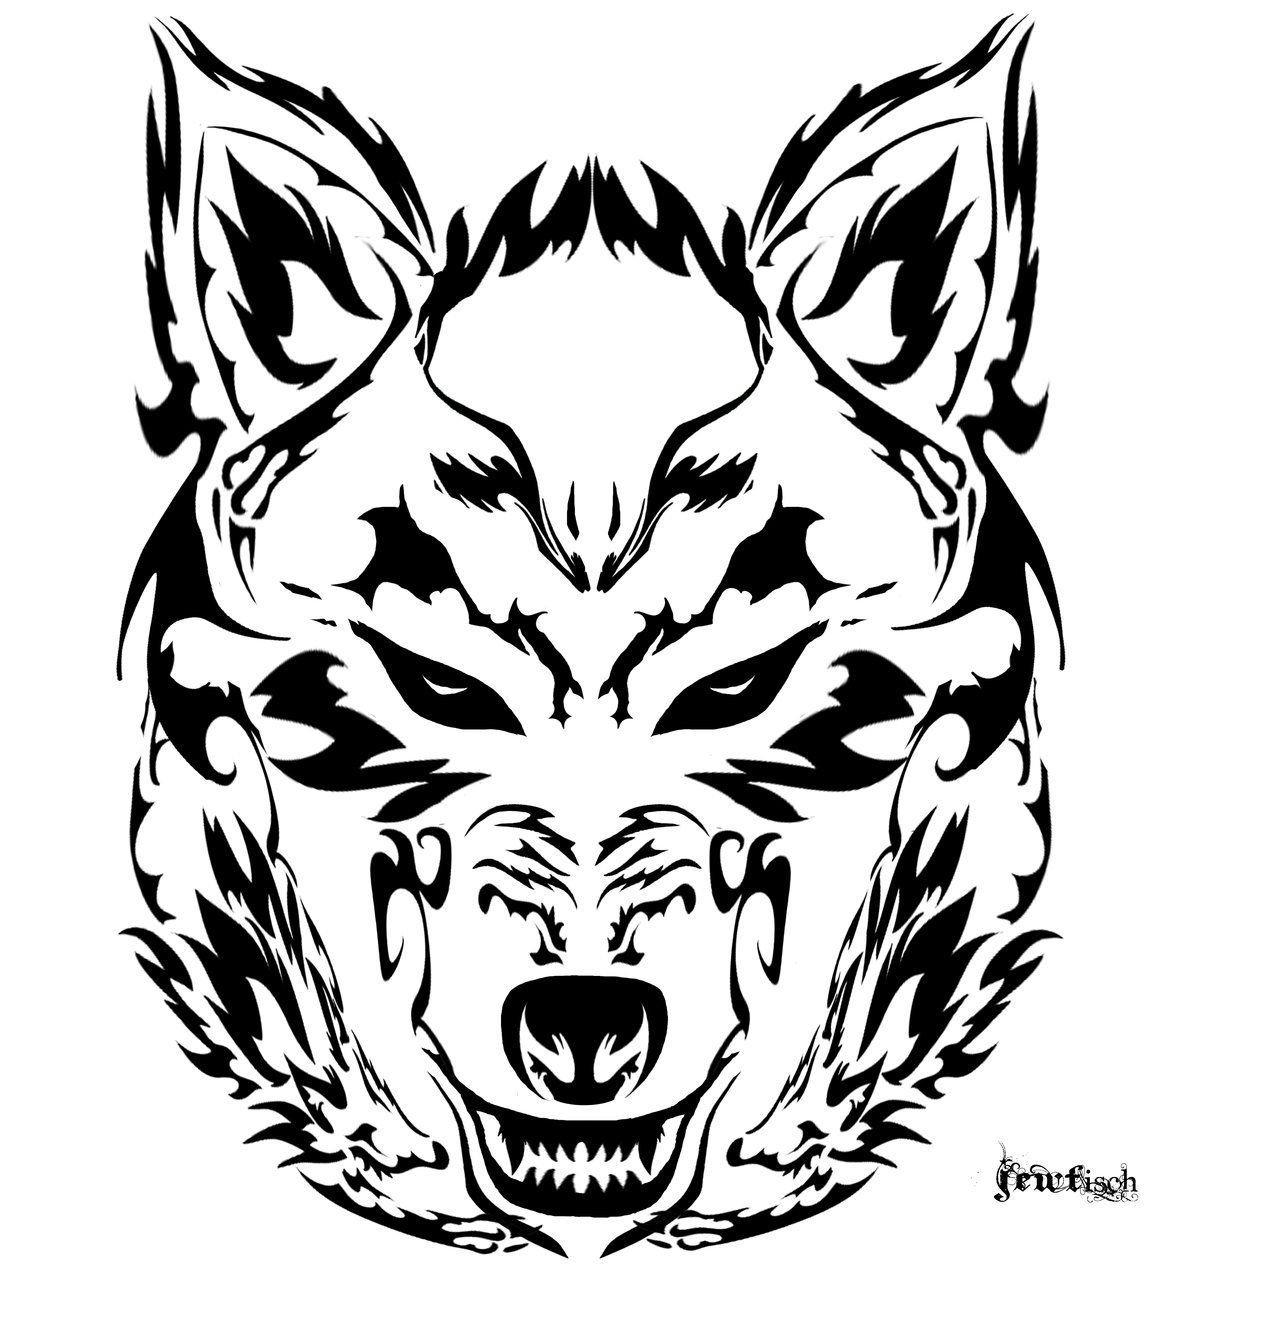 Hd Wallpapers 3d Art Tattoo Design: Tribal Wolf - Google Search